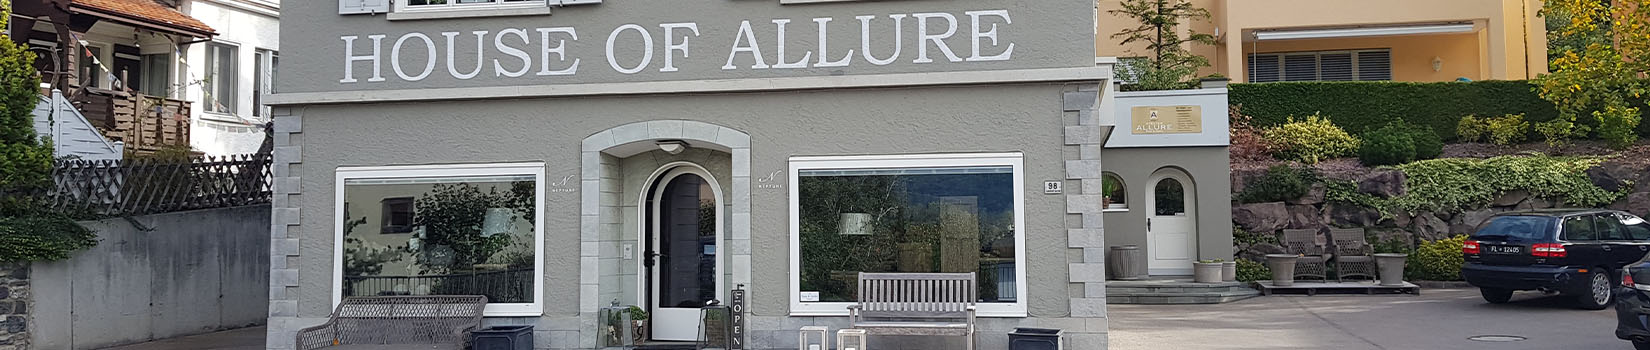 House of ALLURE